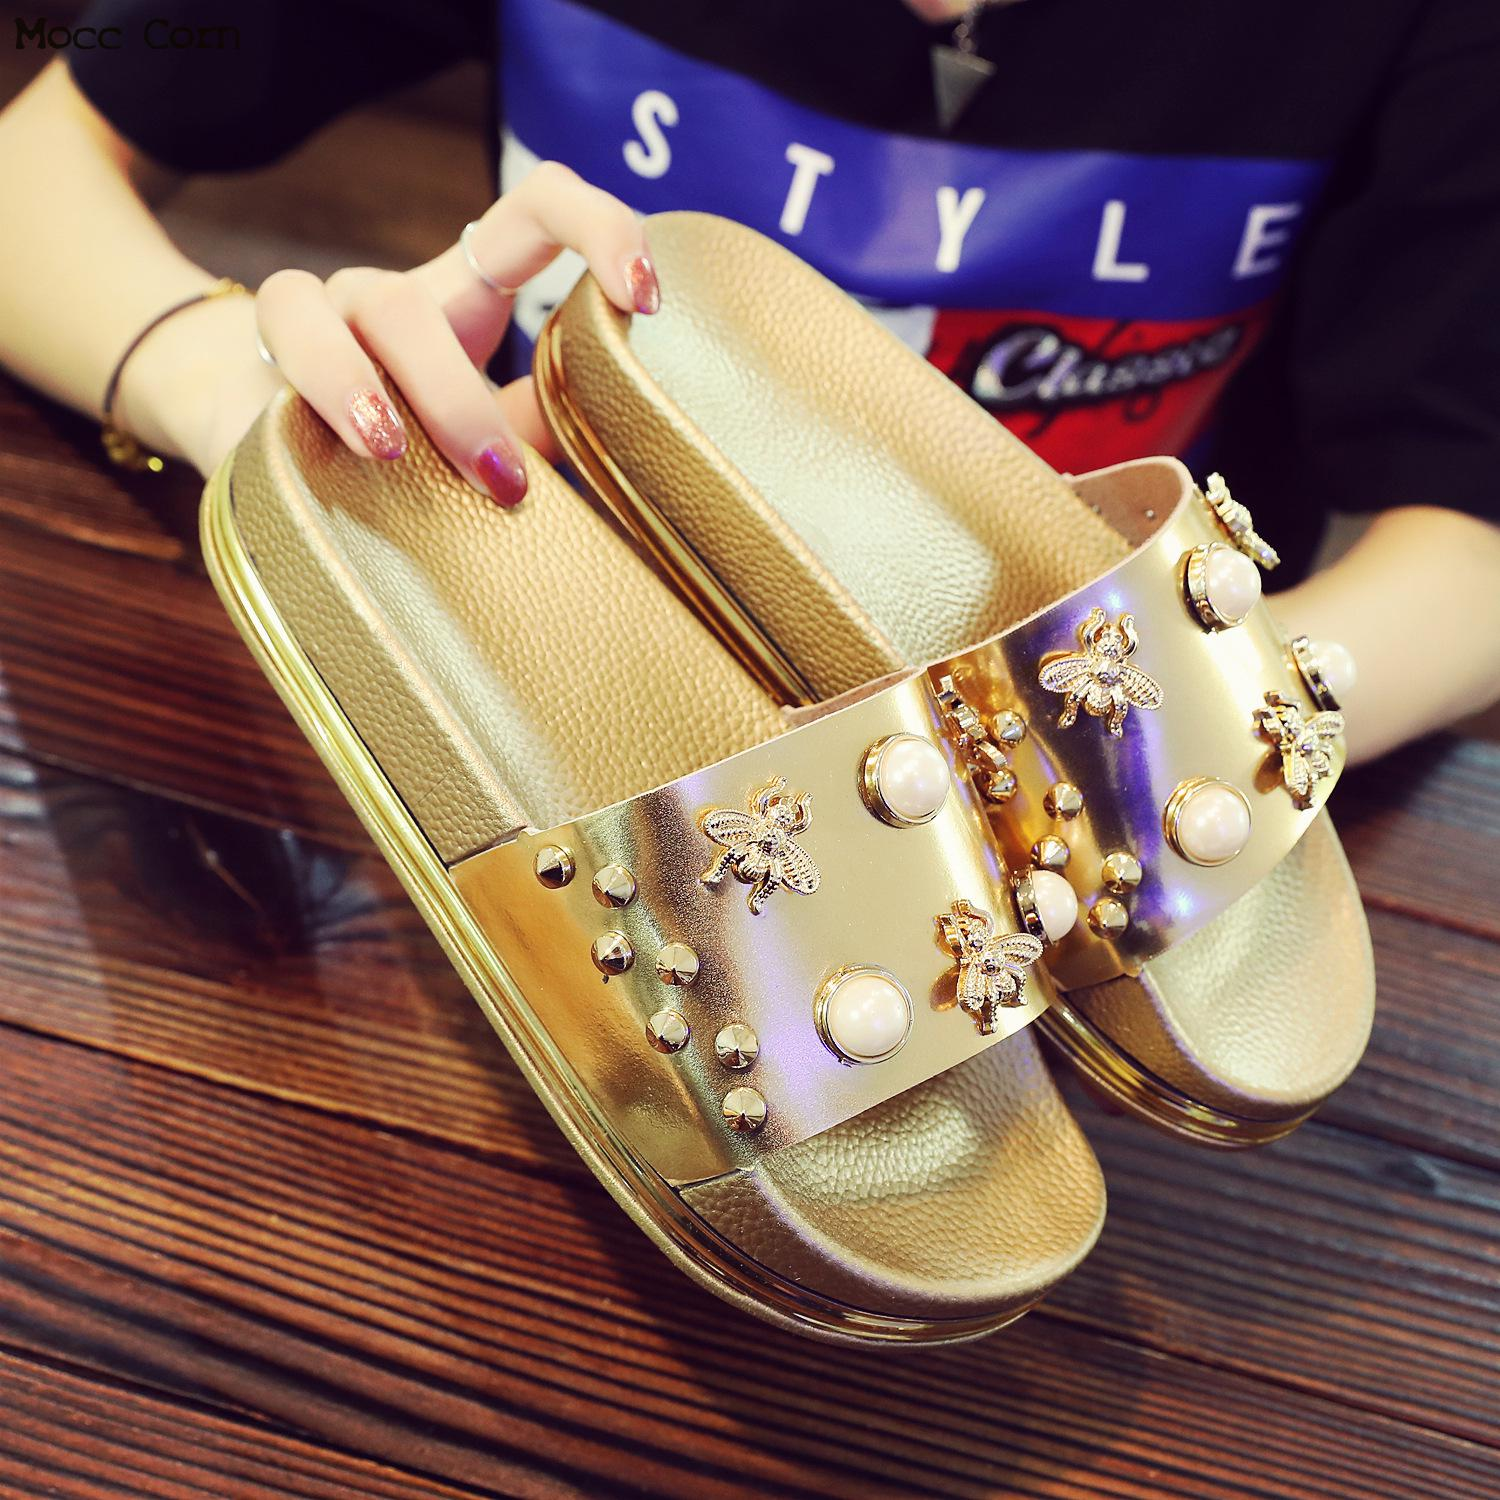 Bling Gold Silver Slipper Platform Sandals Indoor Floor Home Women Slippers Summer Pearl Bathroom Non-slip Beach Sandals Shoes slipper